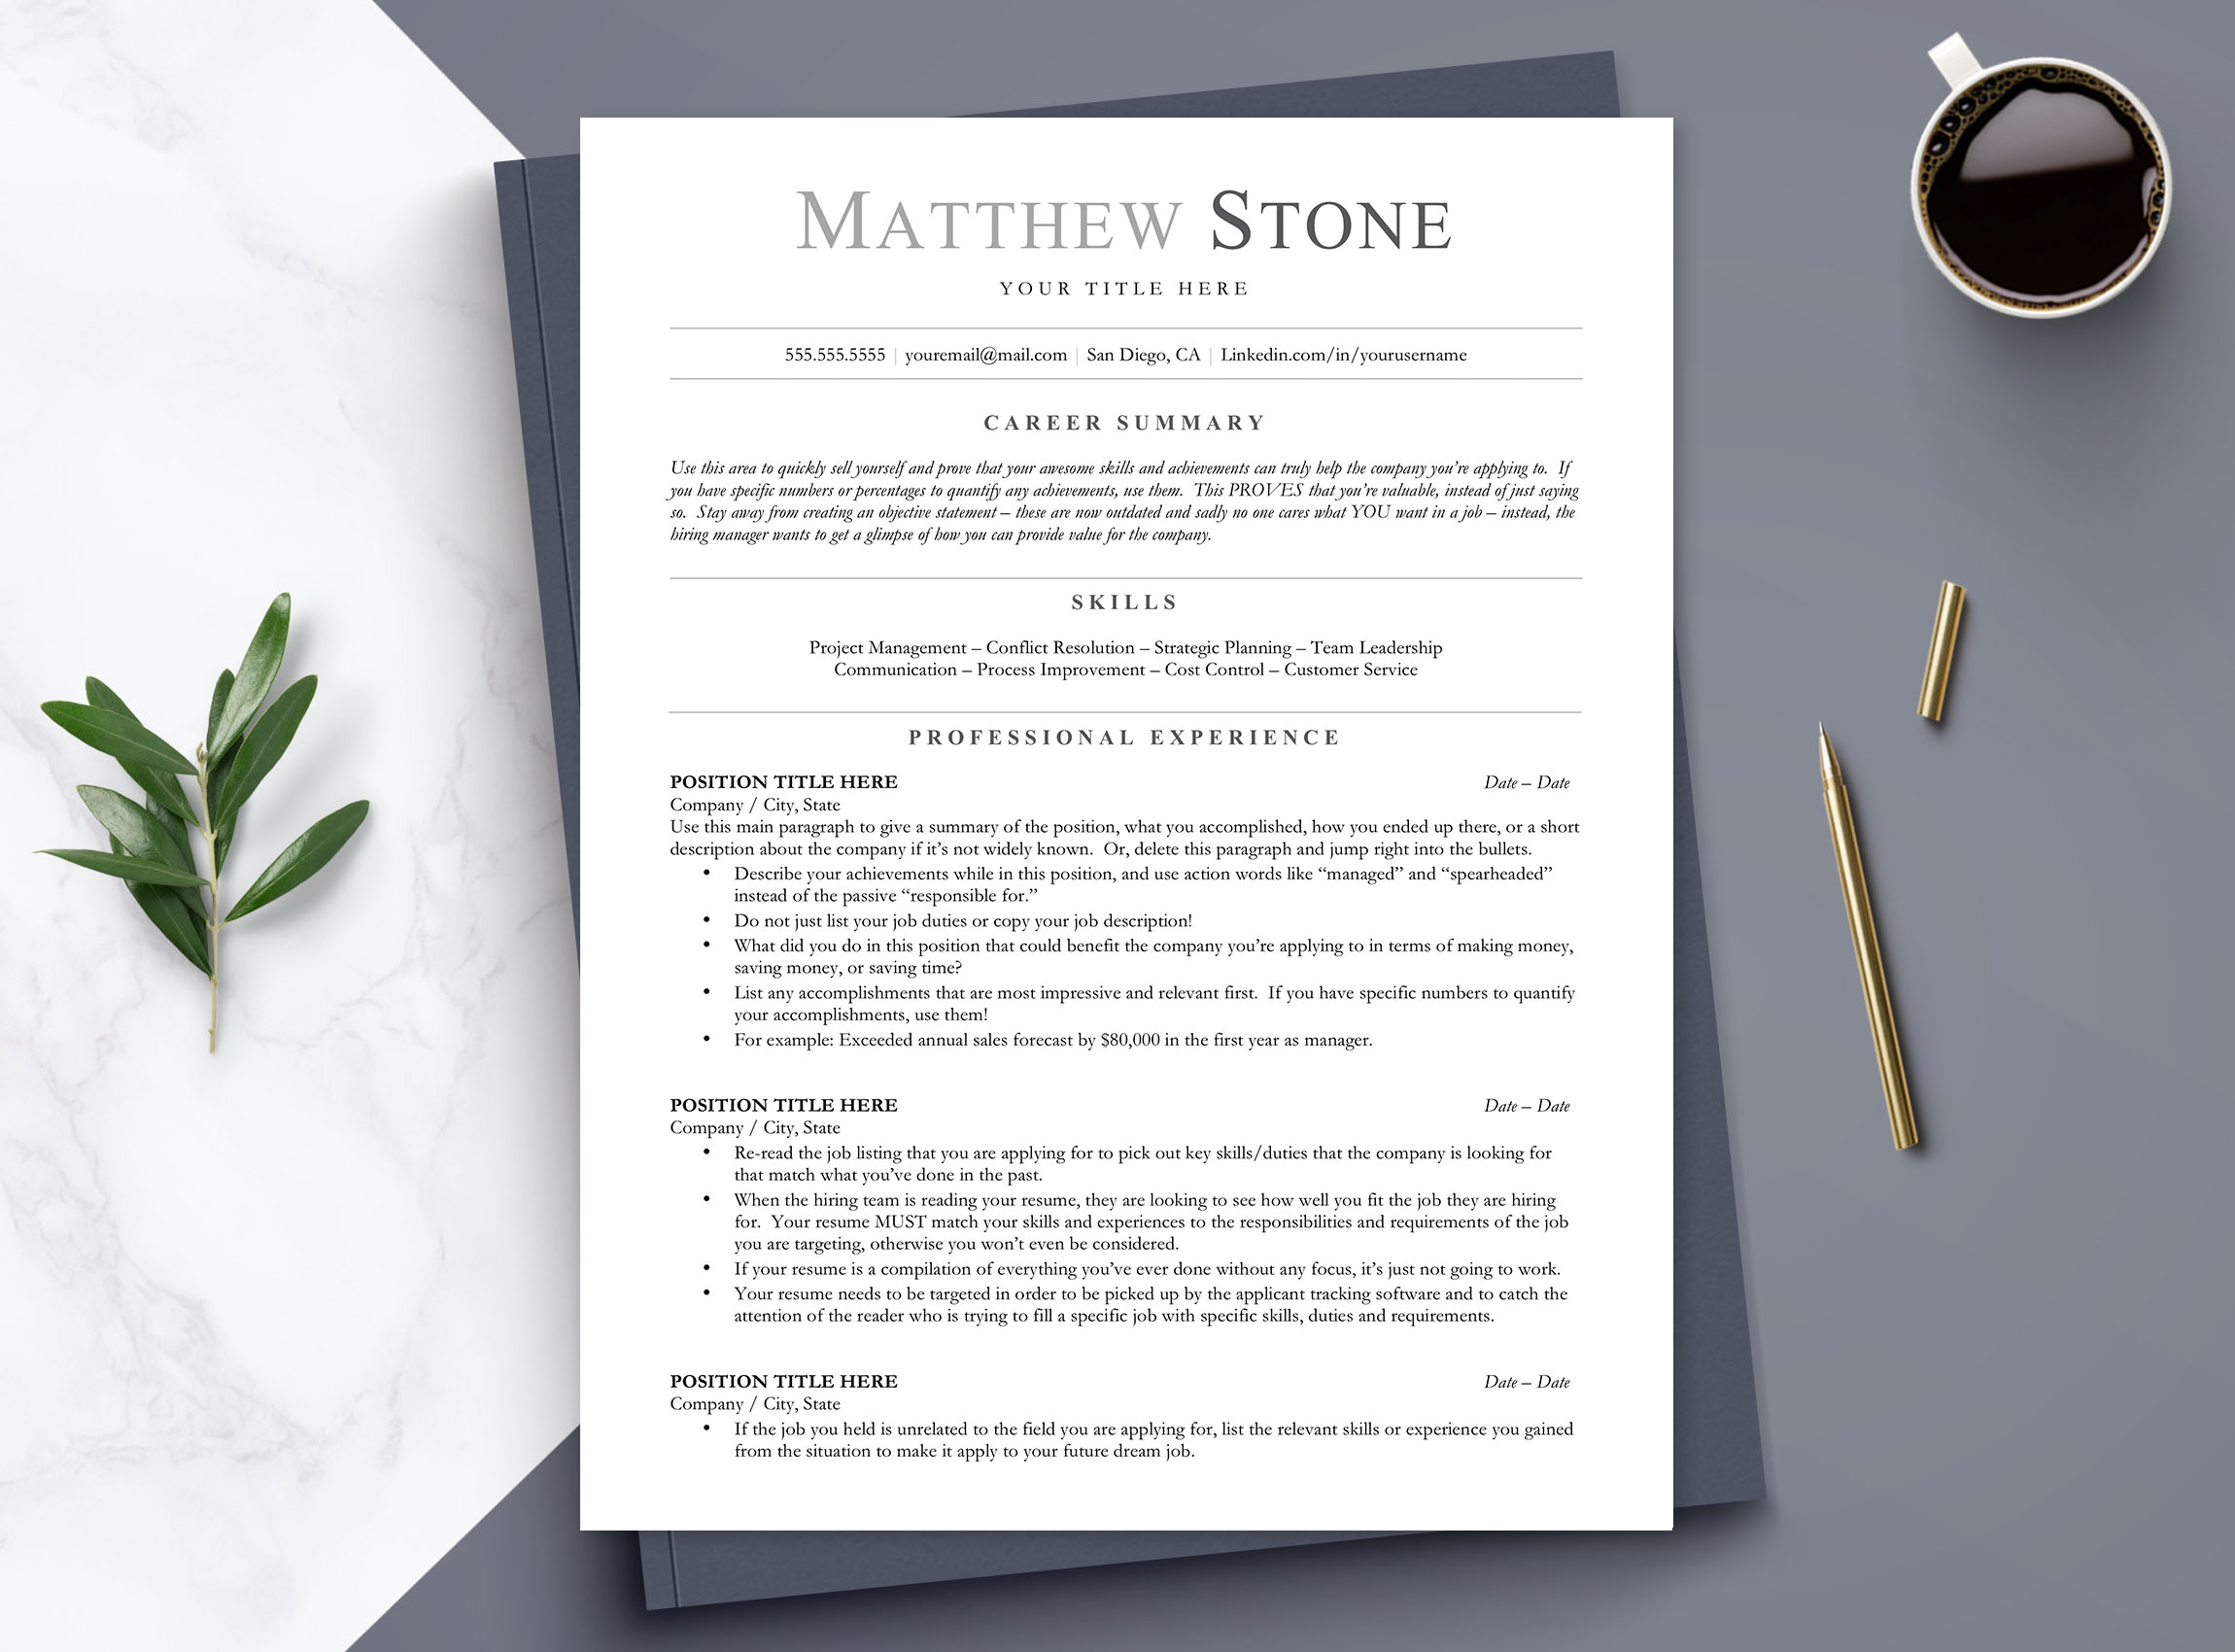 ats friendly resume template for word open office google docs get landed Resume Ats Friendly Resume Template